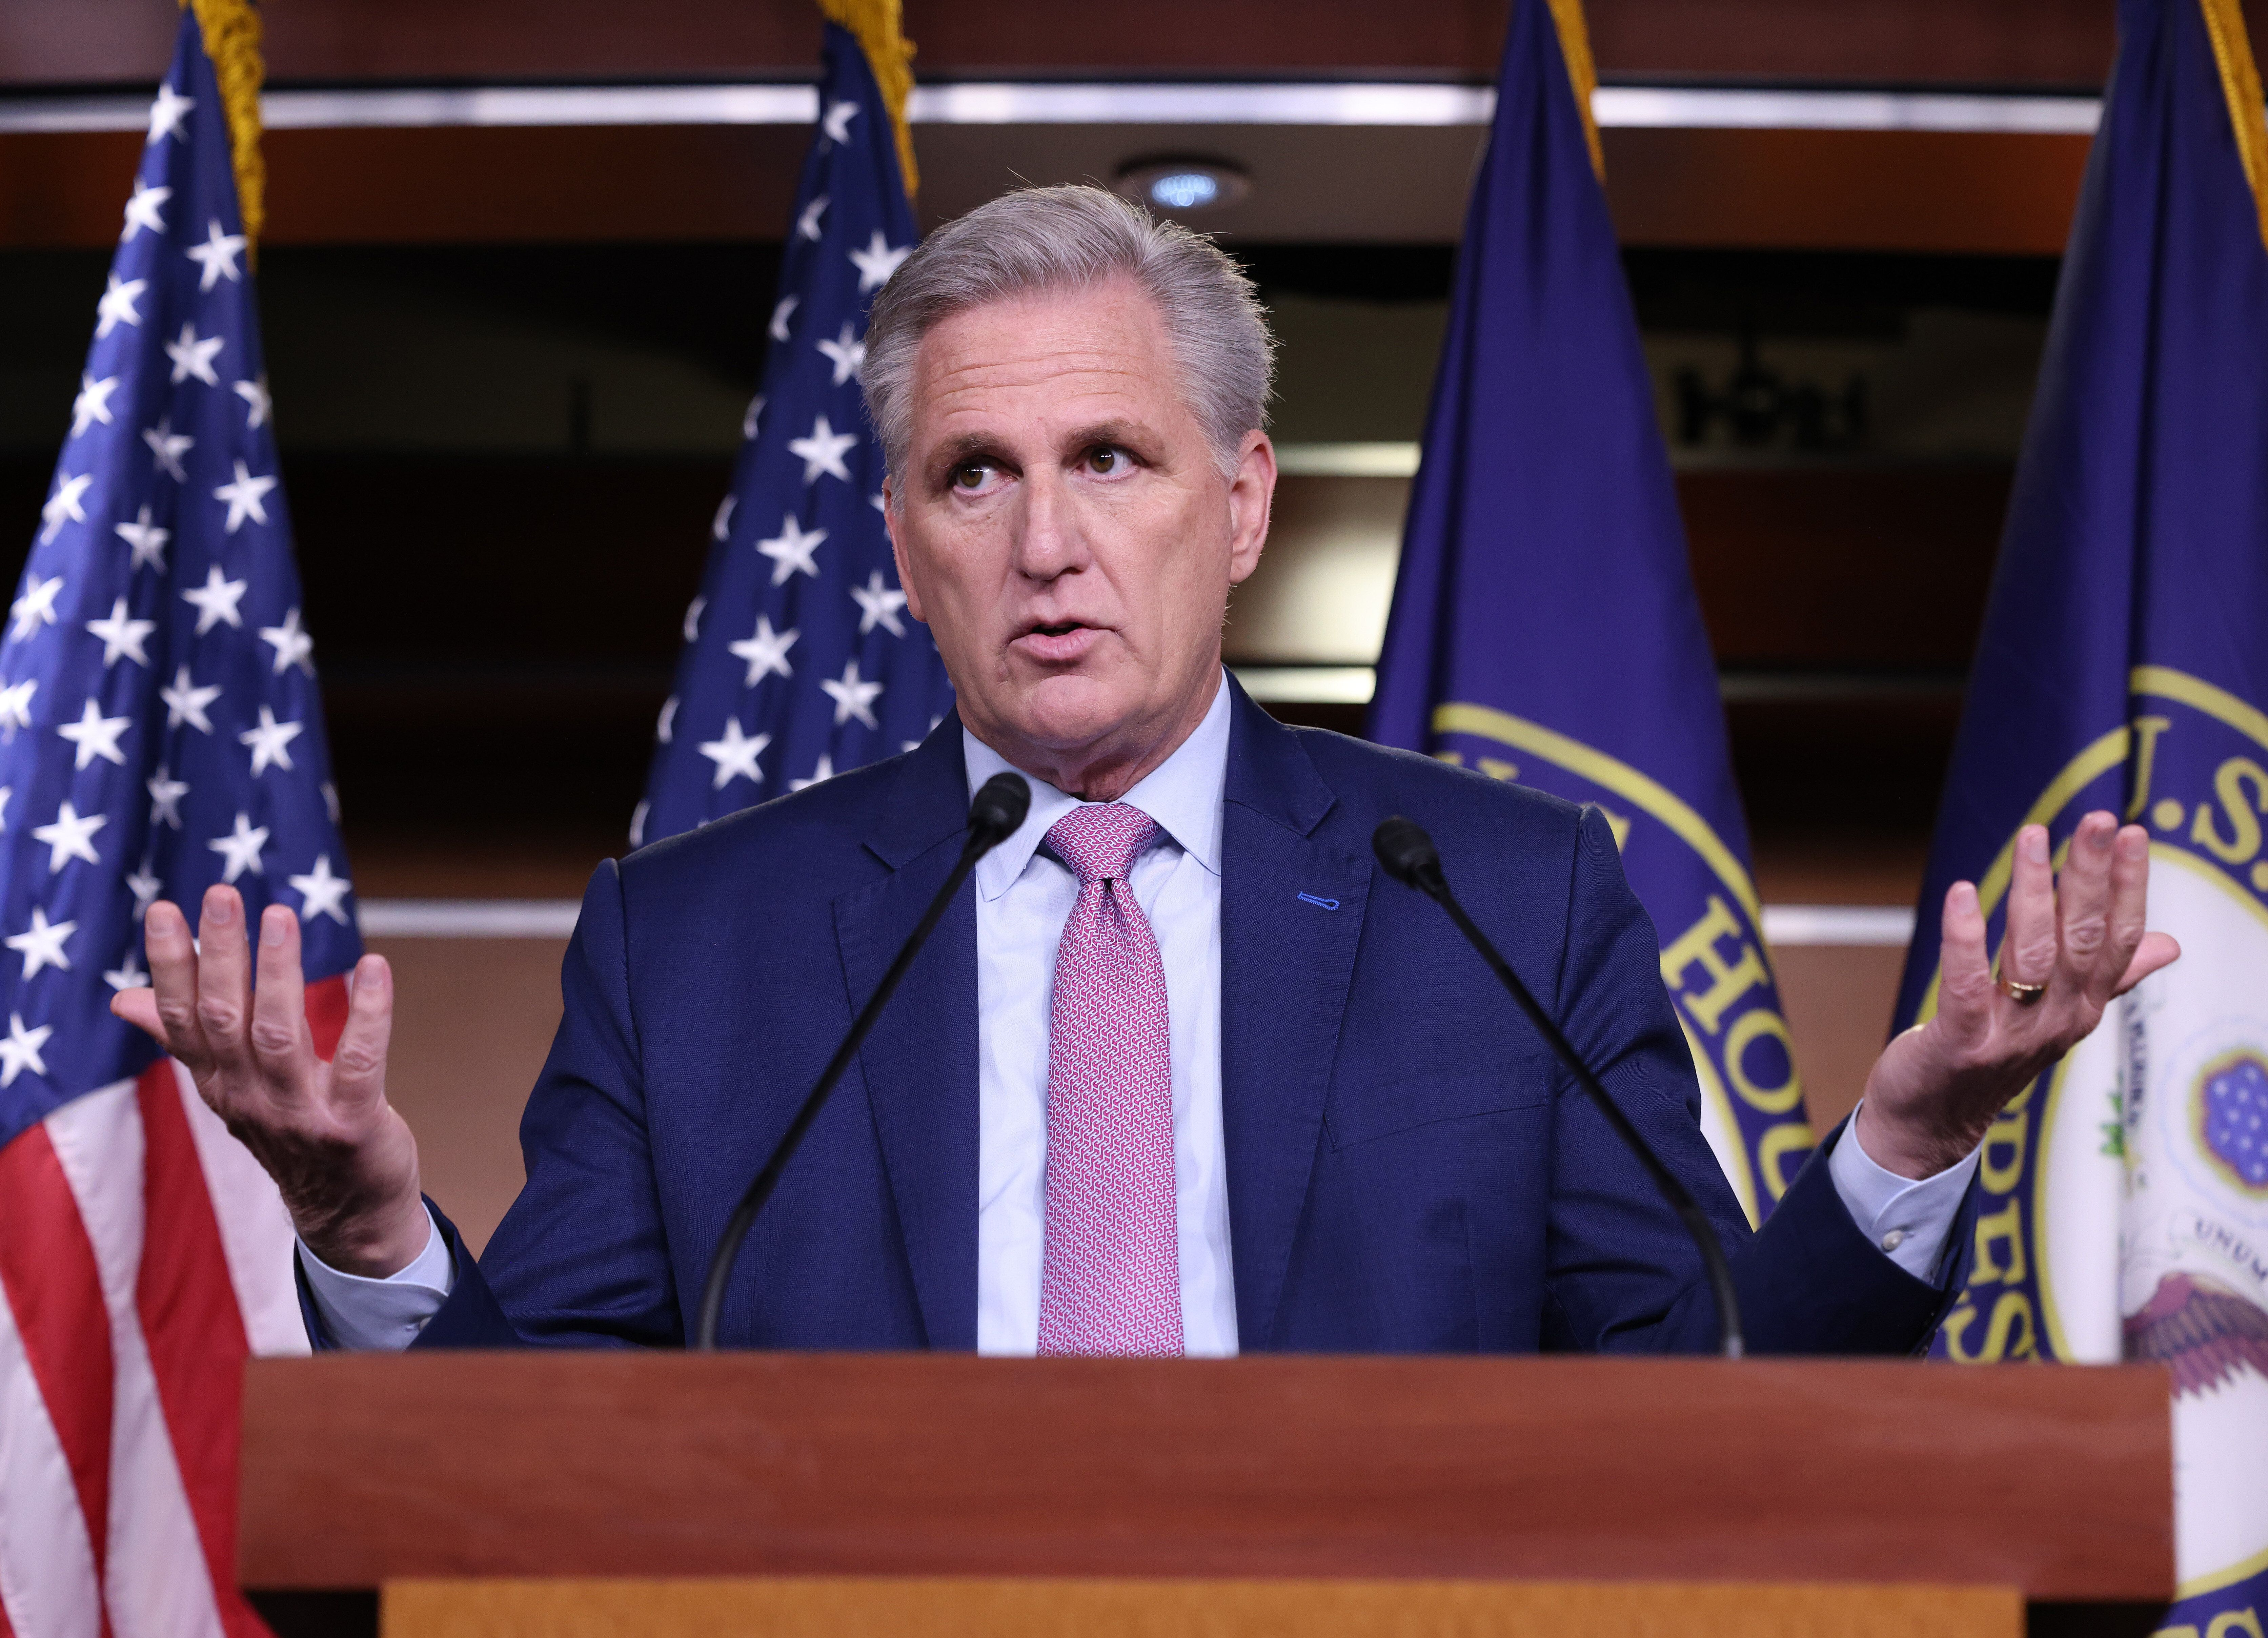 House Minority Leader Kevin McCarthy, pictured, was asked by Michael Fanone in Friday's meeting toasking him to publicl